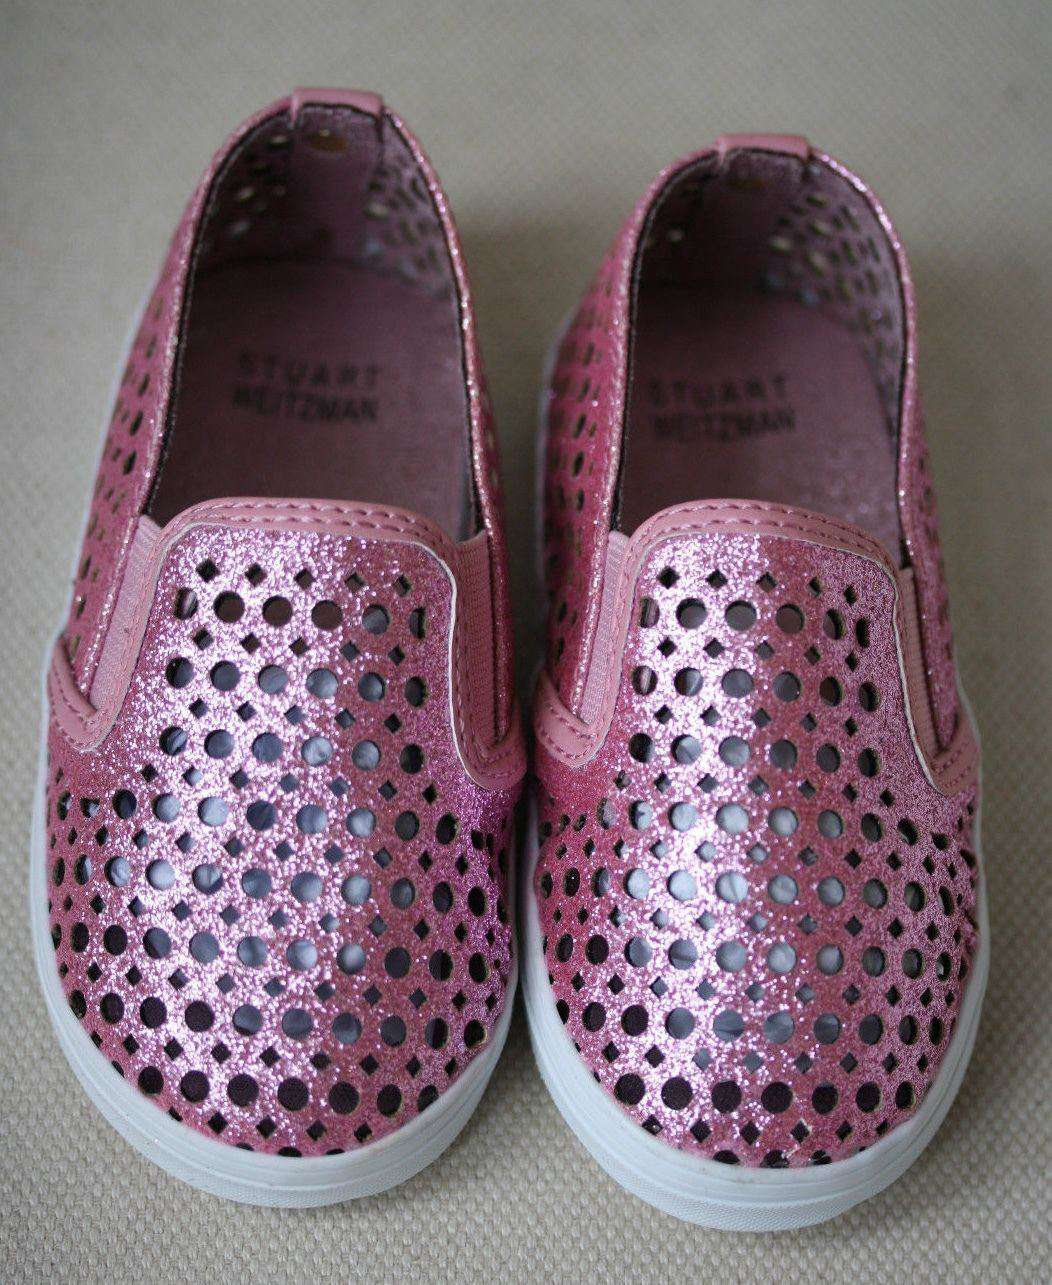 STUART WEITZMAN BABY COUNTRY PINK MINI GLITTER SHOES EU 21 UK 4.5